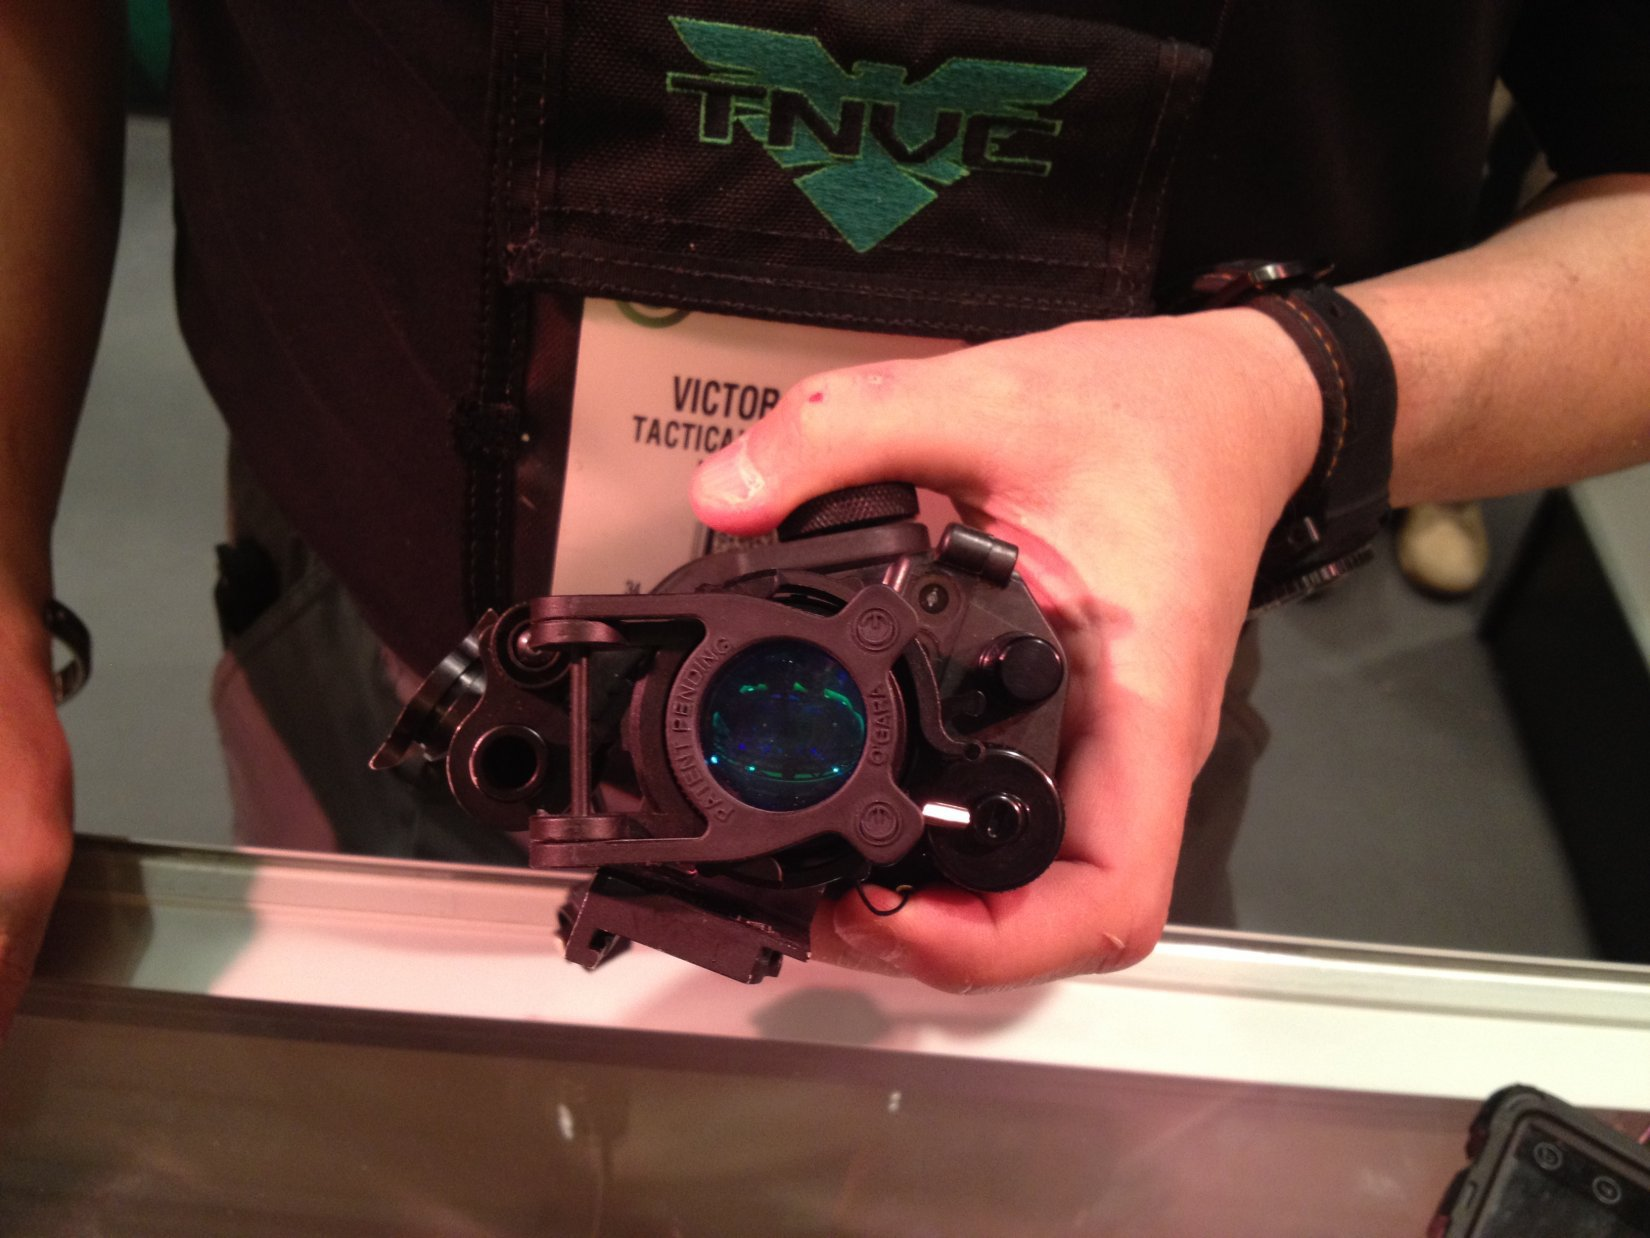 Tactical Night Vision Company (TNVC) Universal Re-Focus Ring (RFR) Flip-Down/Flip-Up Lens for Night Observation Devices (NODS): Instantly Refocus Your Monocular or Goggle During Tactical Night Ops